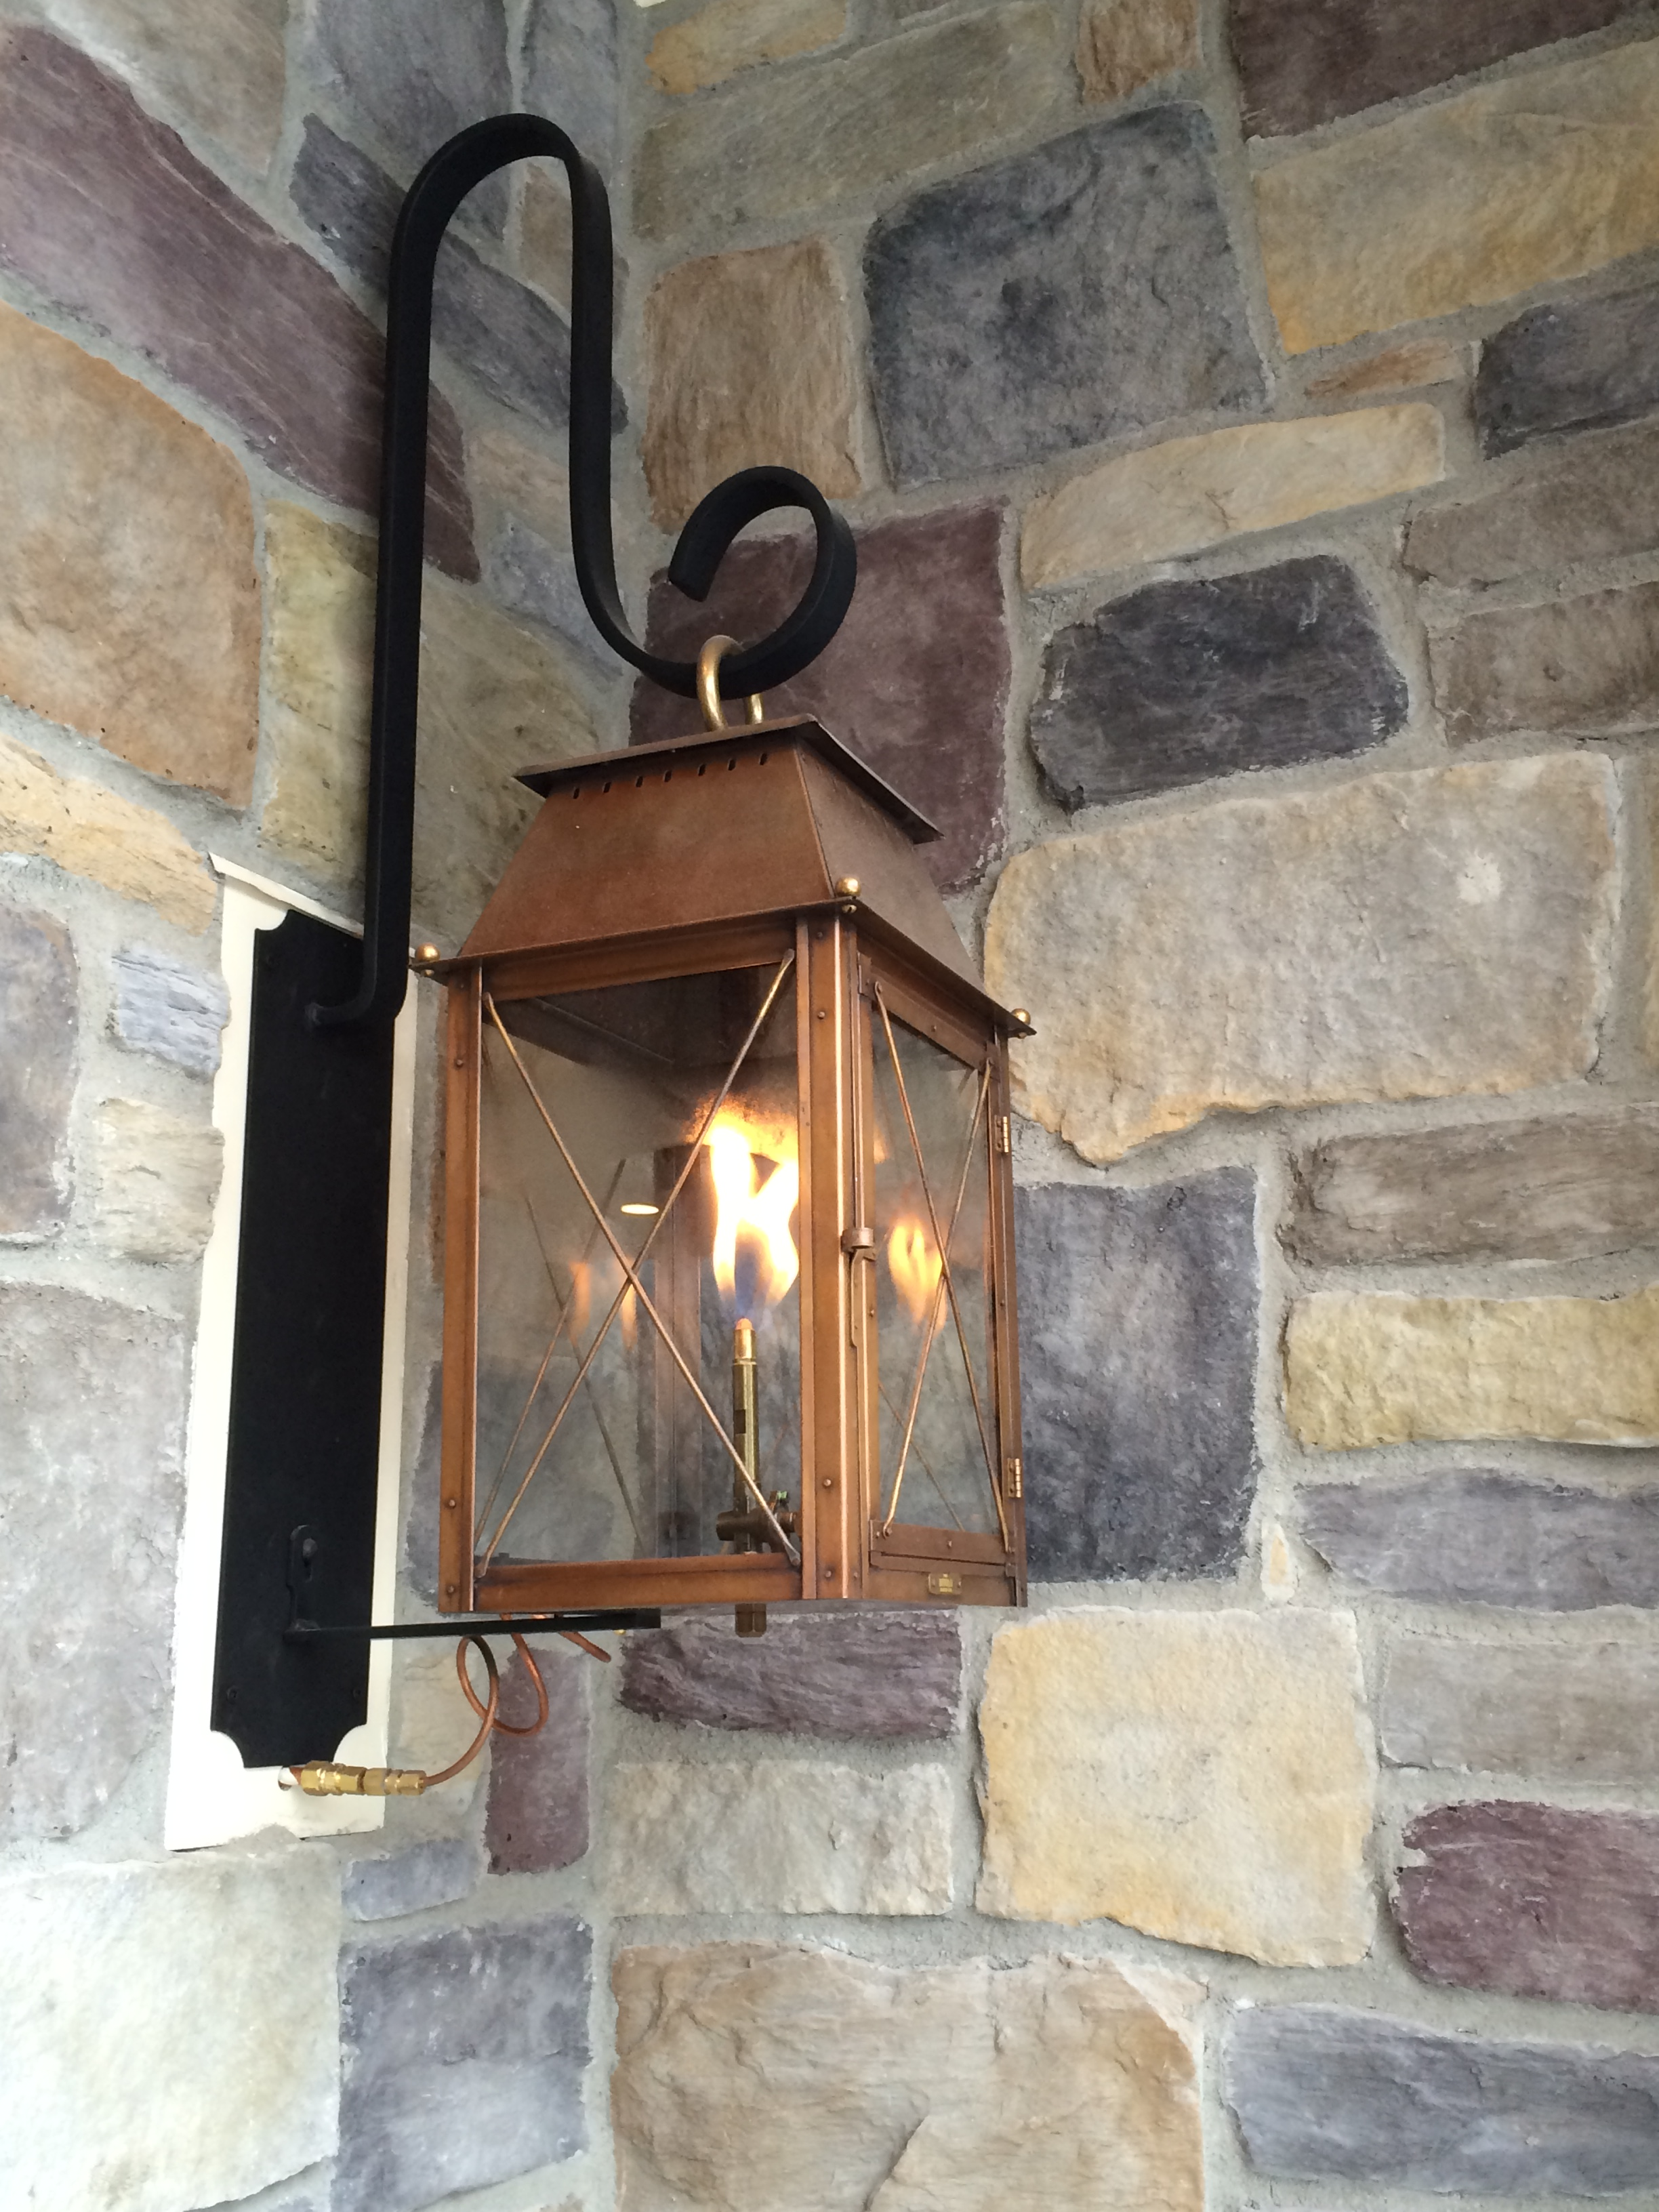 Bevolo Gas And Electric Lights Began In The French Quarter 1945 When Andrew Sr Revolutionized Production Of Lamps